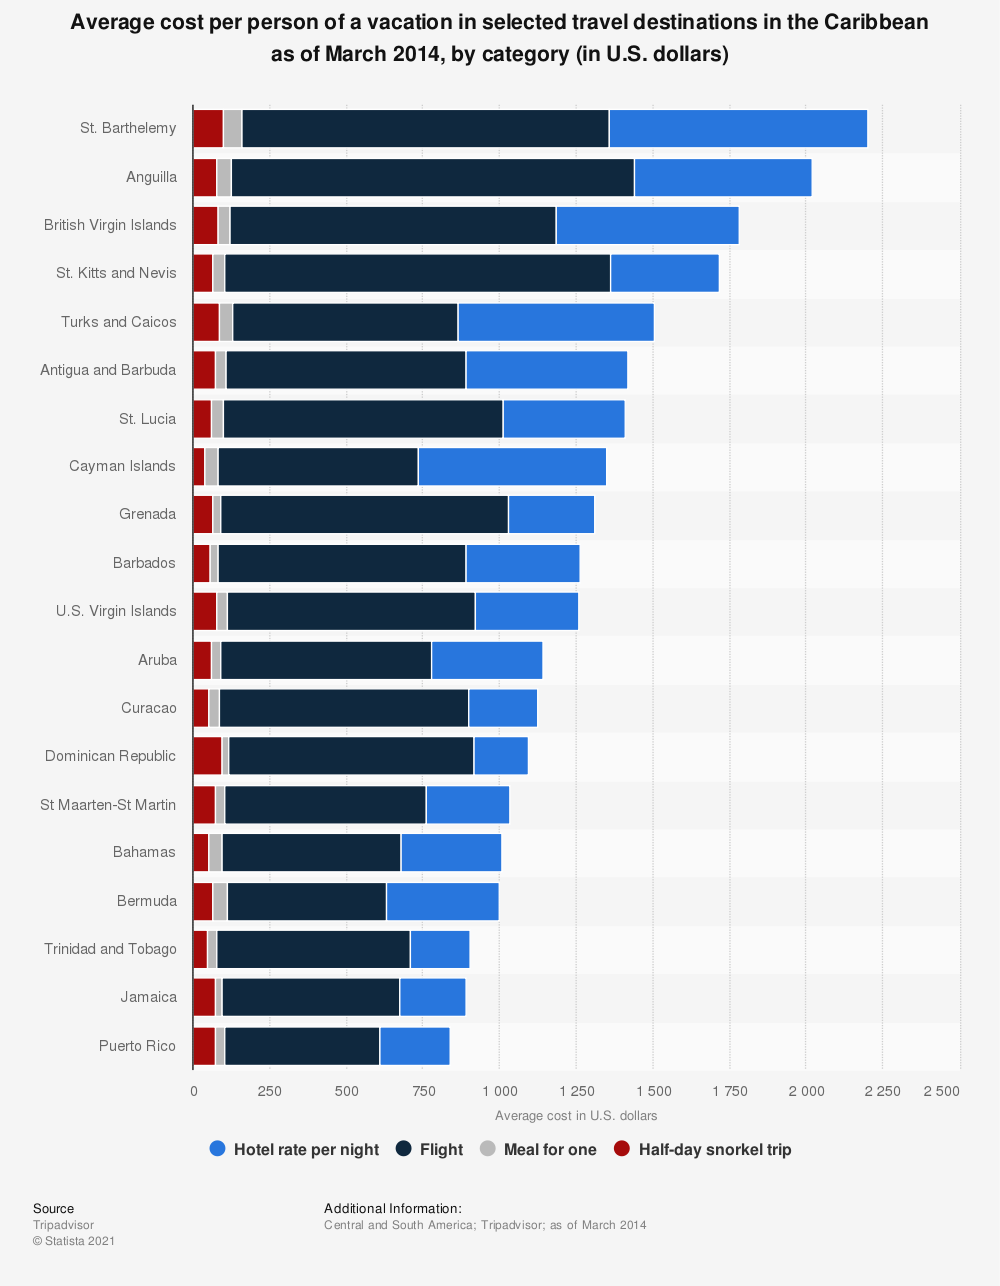 Statistic: Average cost per person of a vacation in selected travel destinations in the Caribbean as of March 2014, by category (in U.S. dollars) | Statista